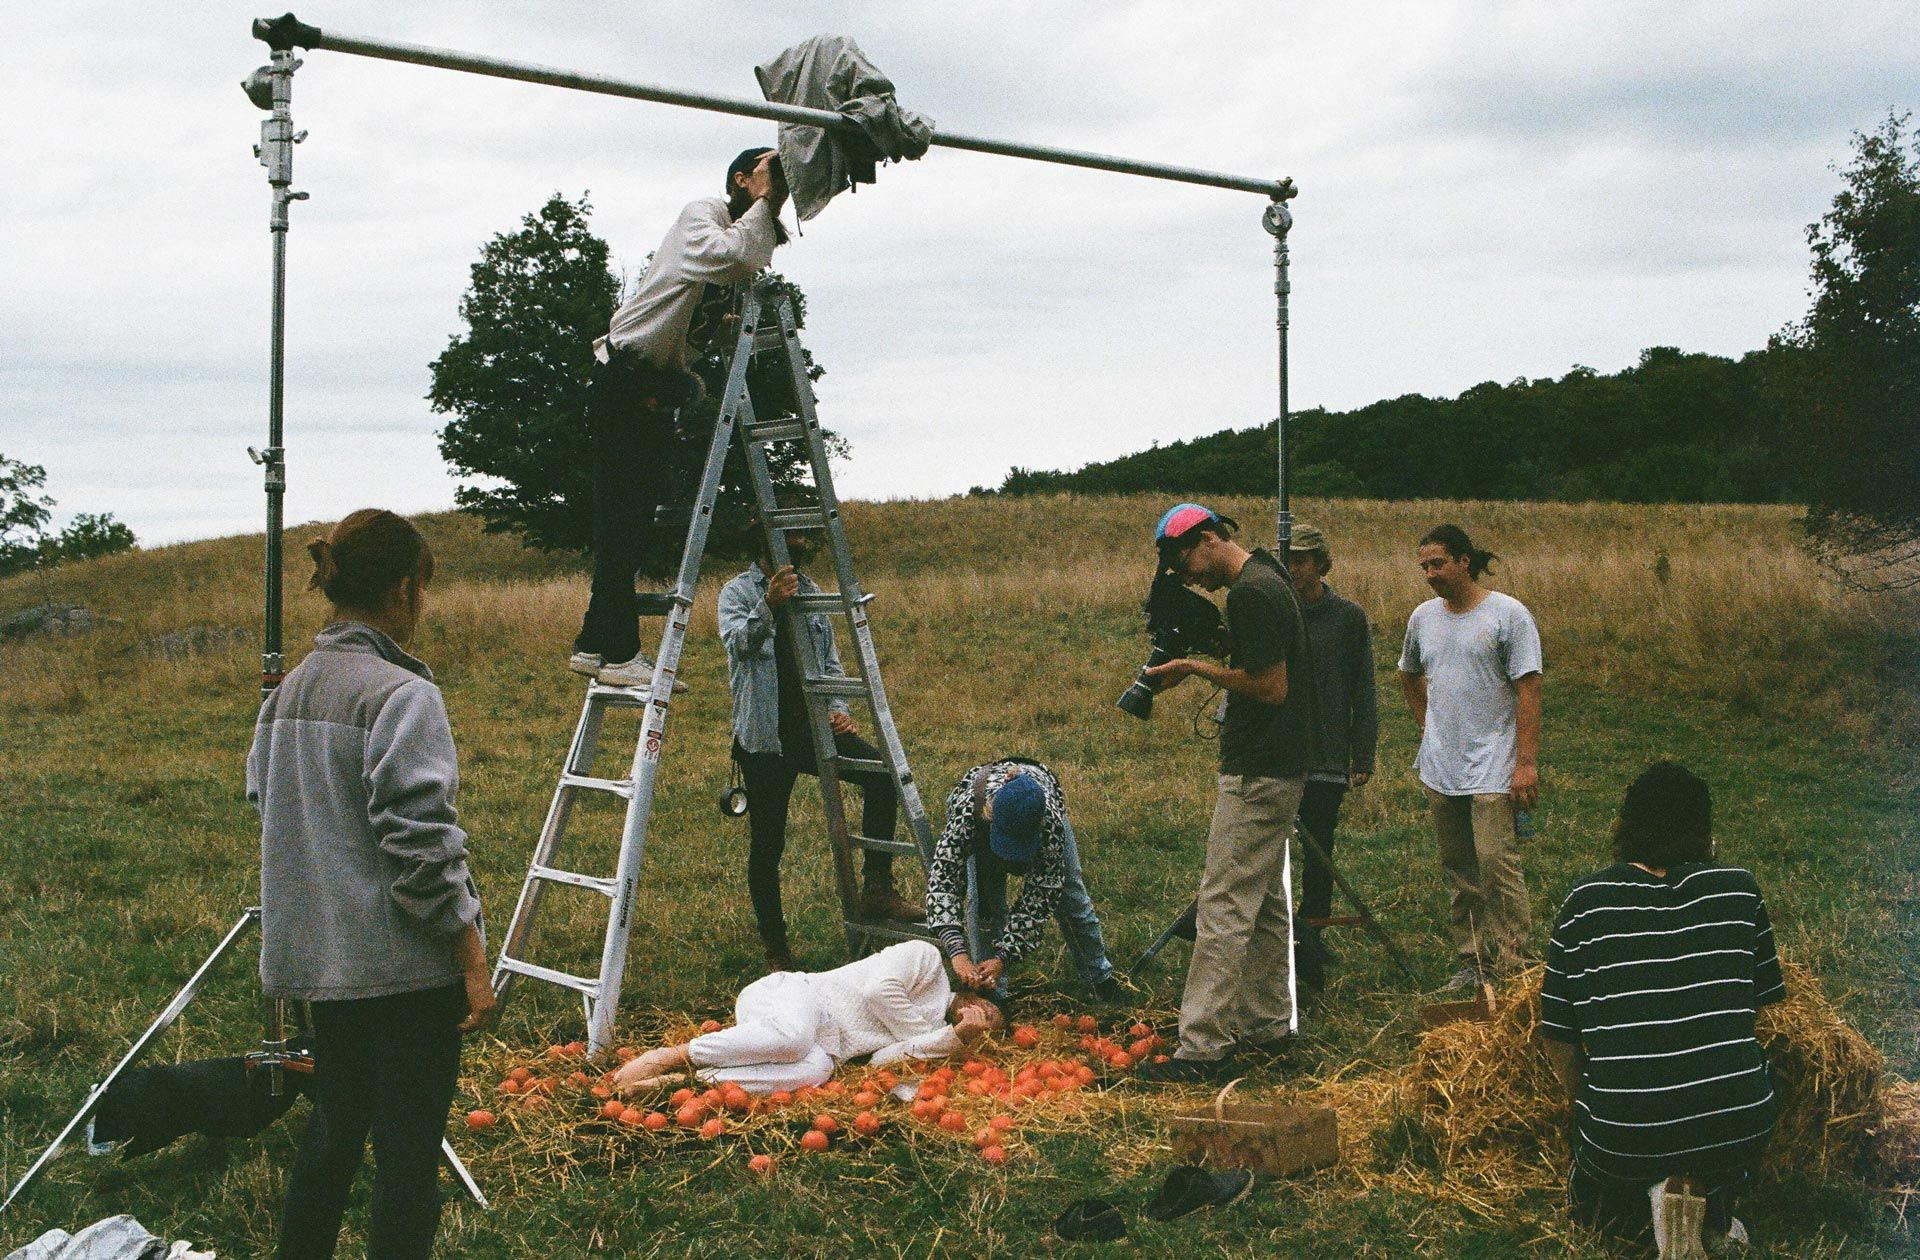 Vincent Ruel-Cote and Marco Gilbert from Les Gamins filming girl laying on the ground on hay and small pumpkins